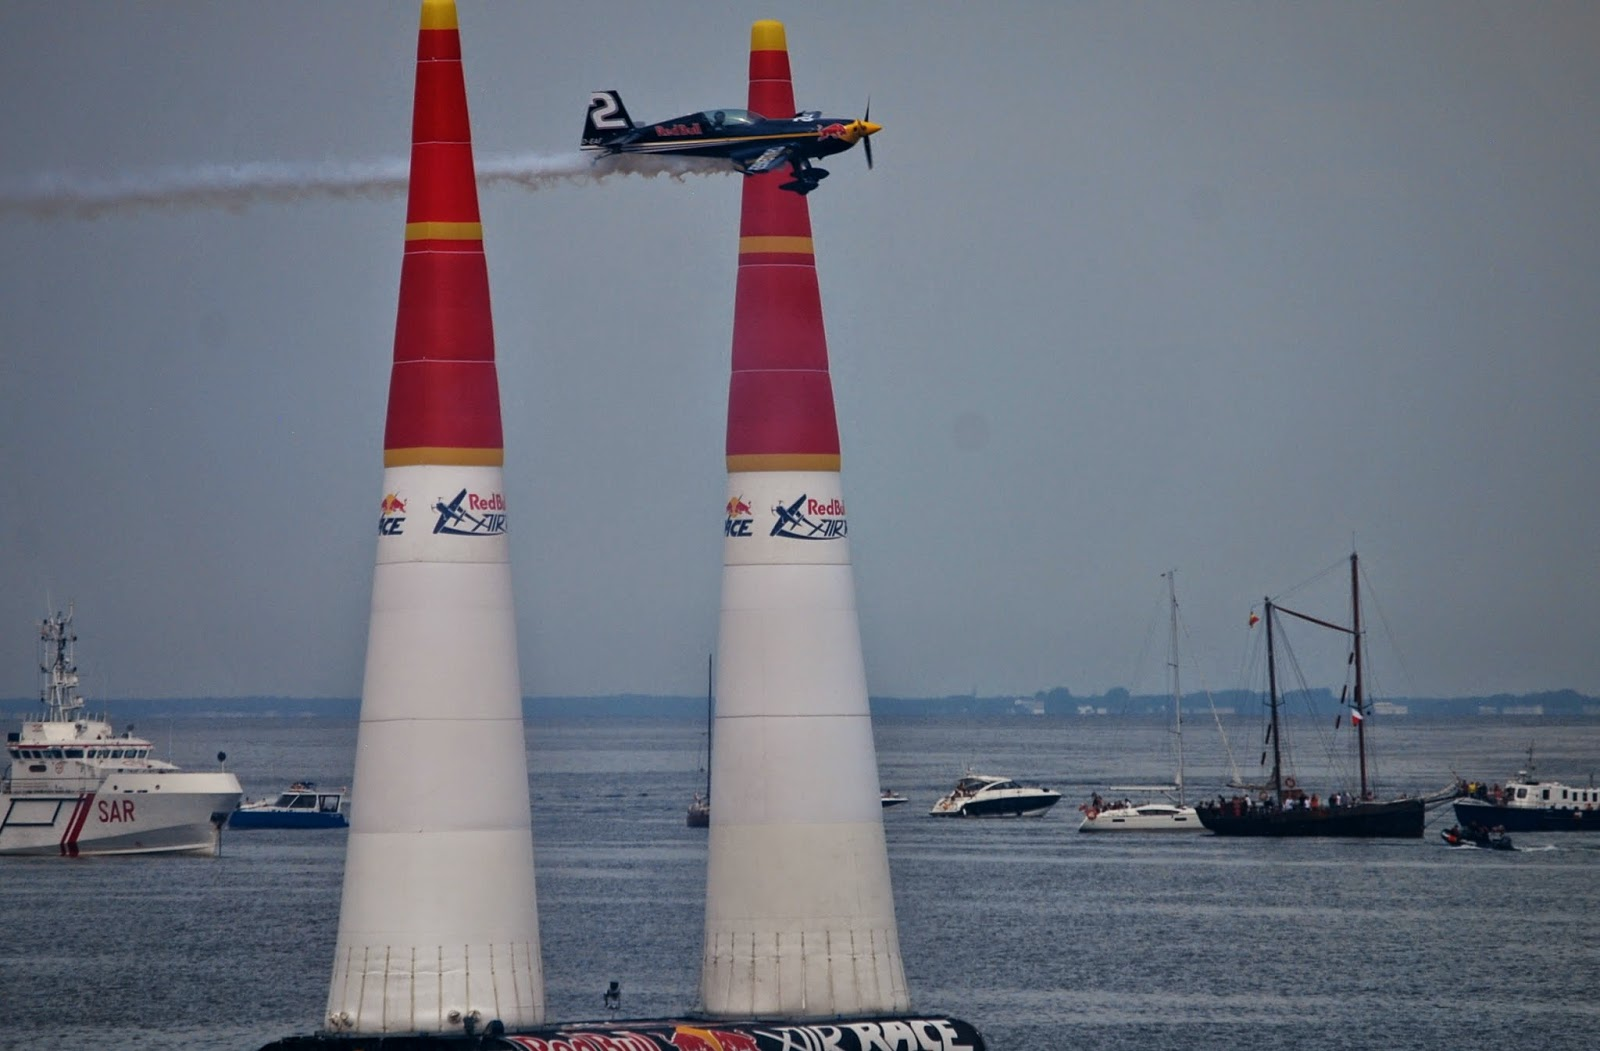 Red Bull Air Race Gdynia